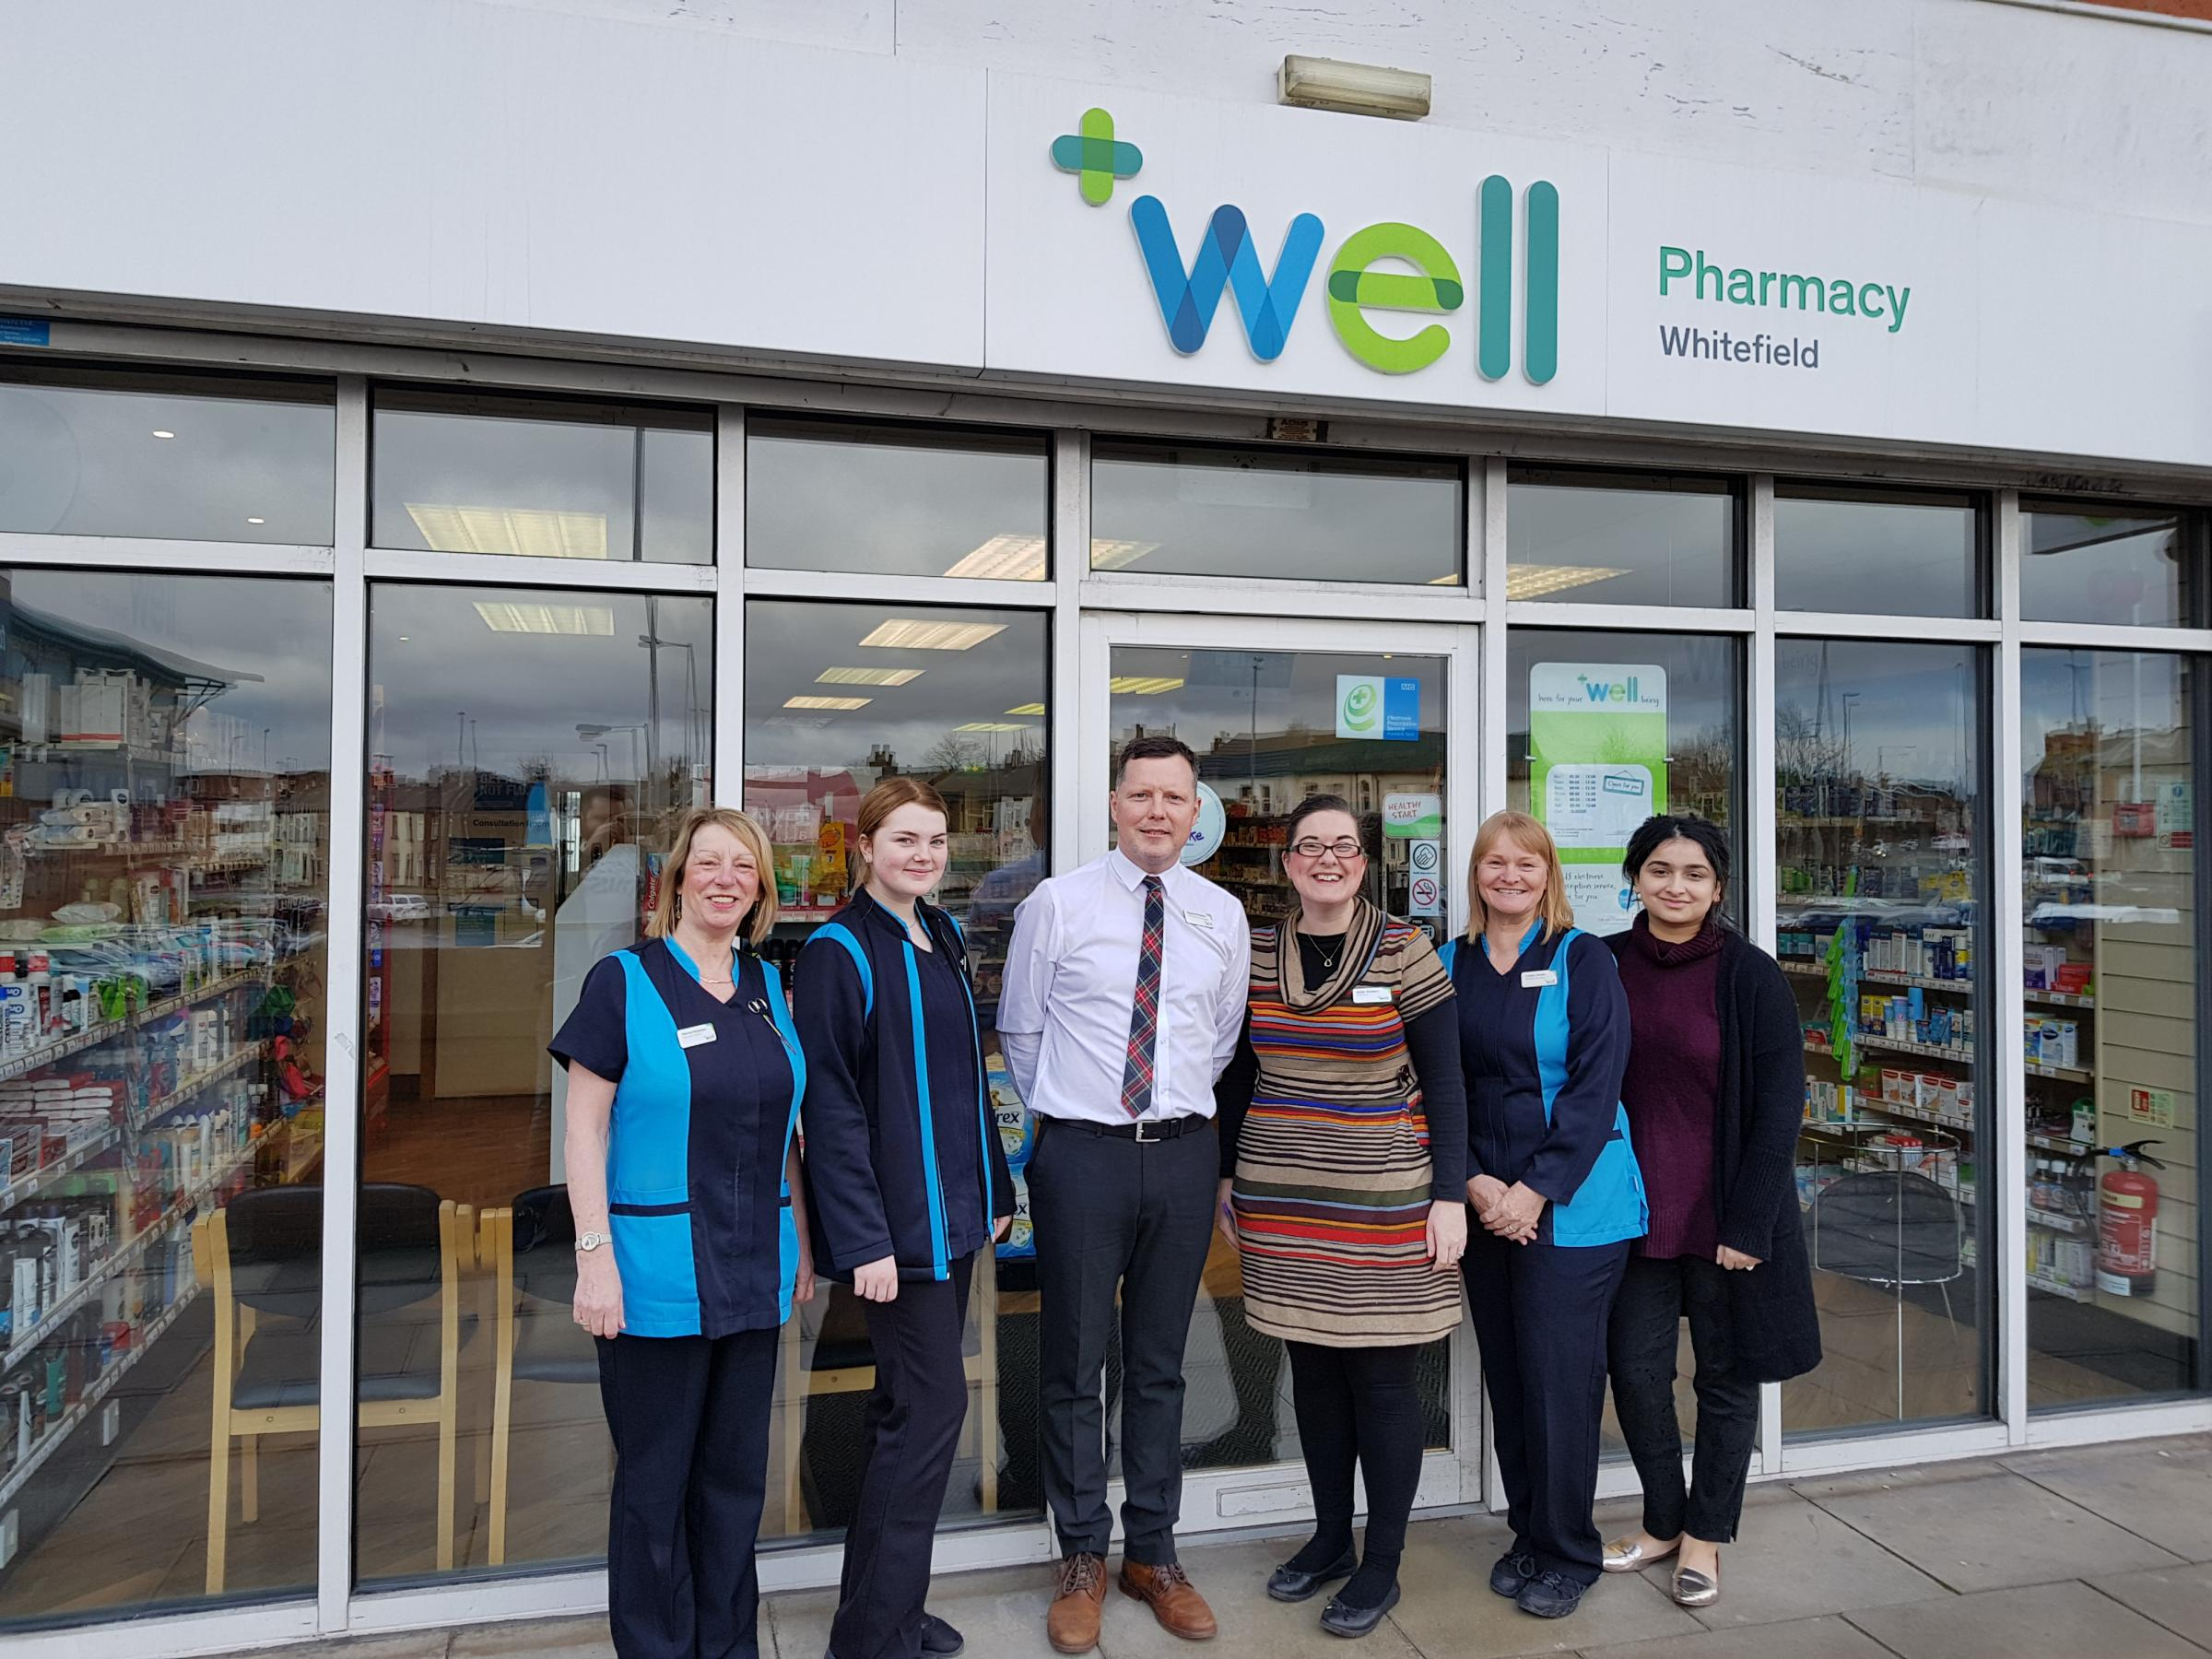 The Whitefield Well Pharmacy team